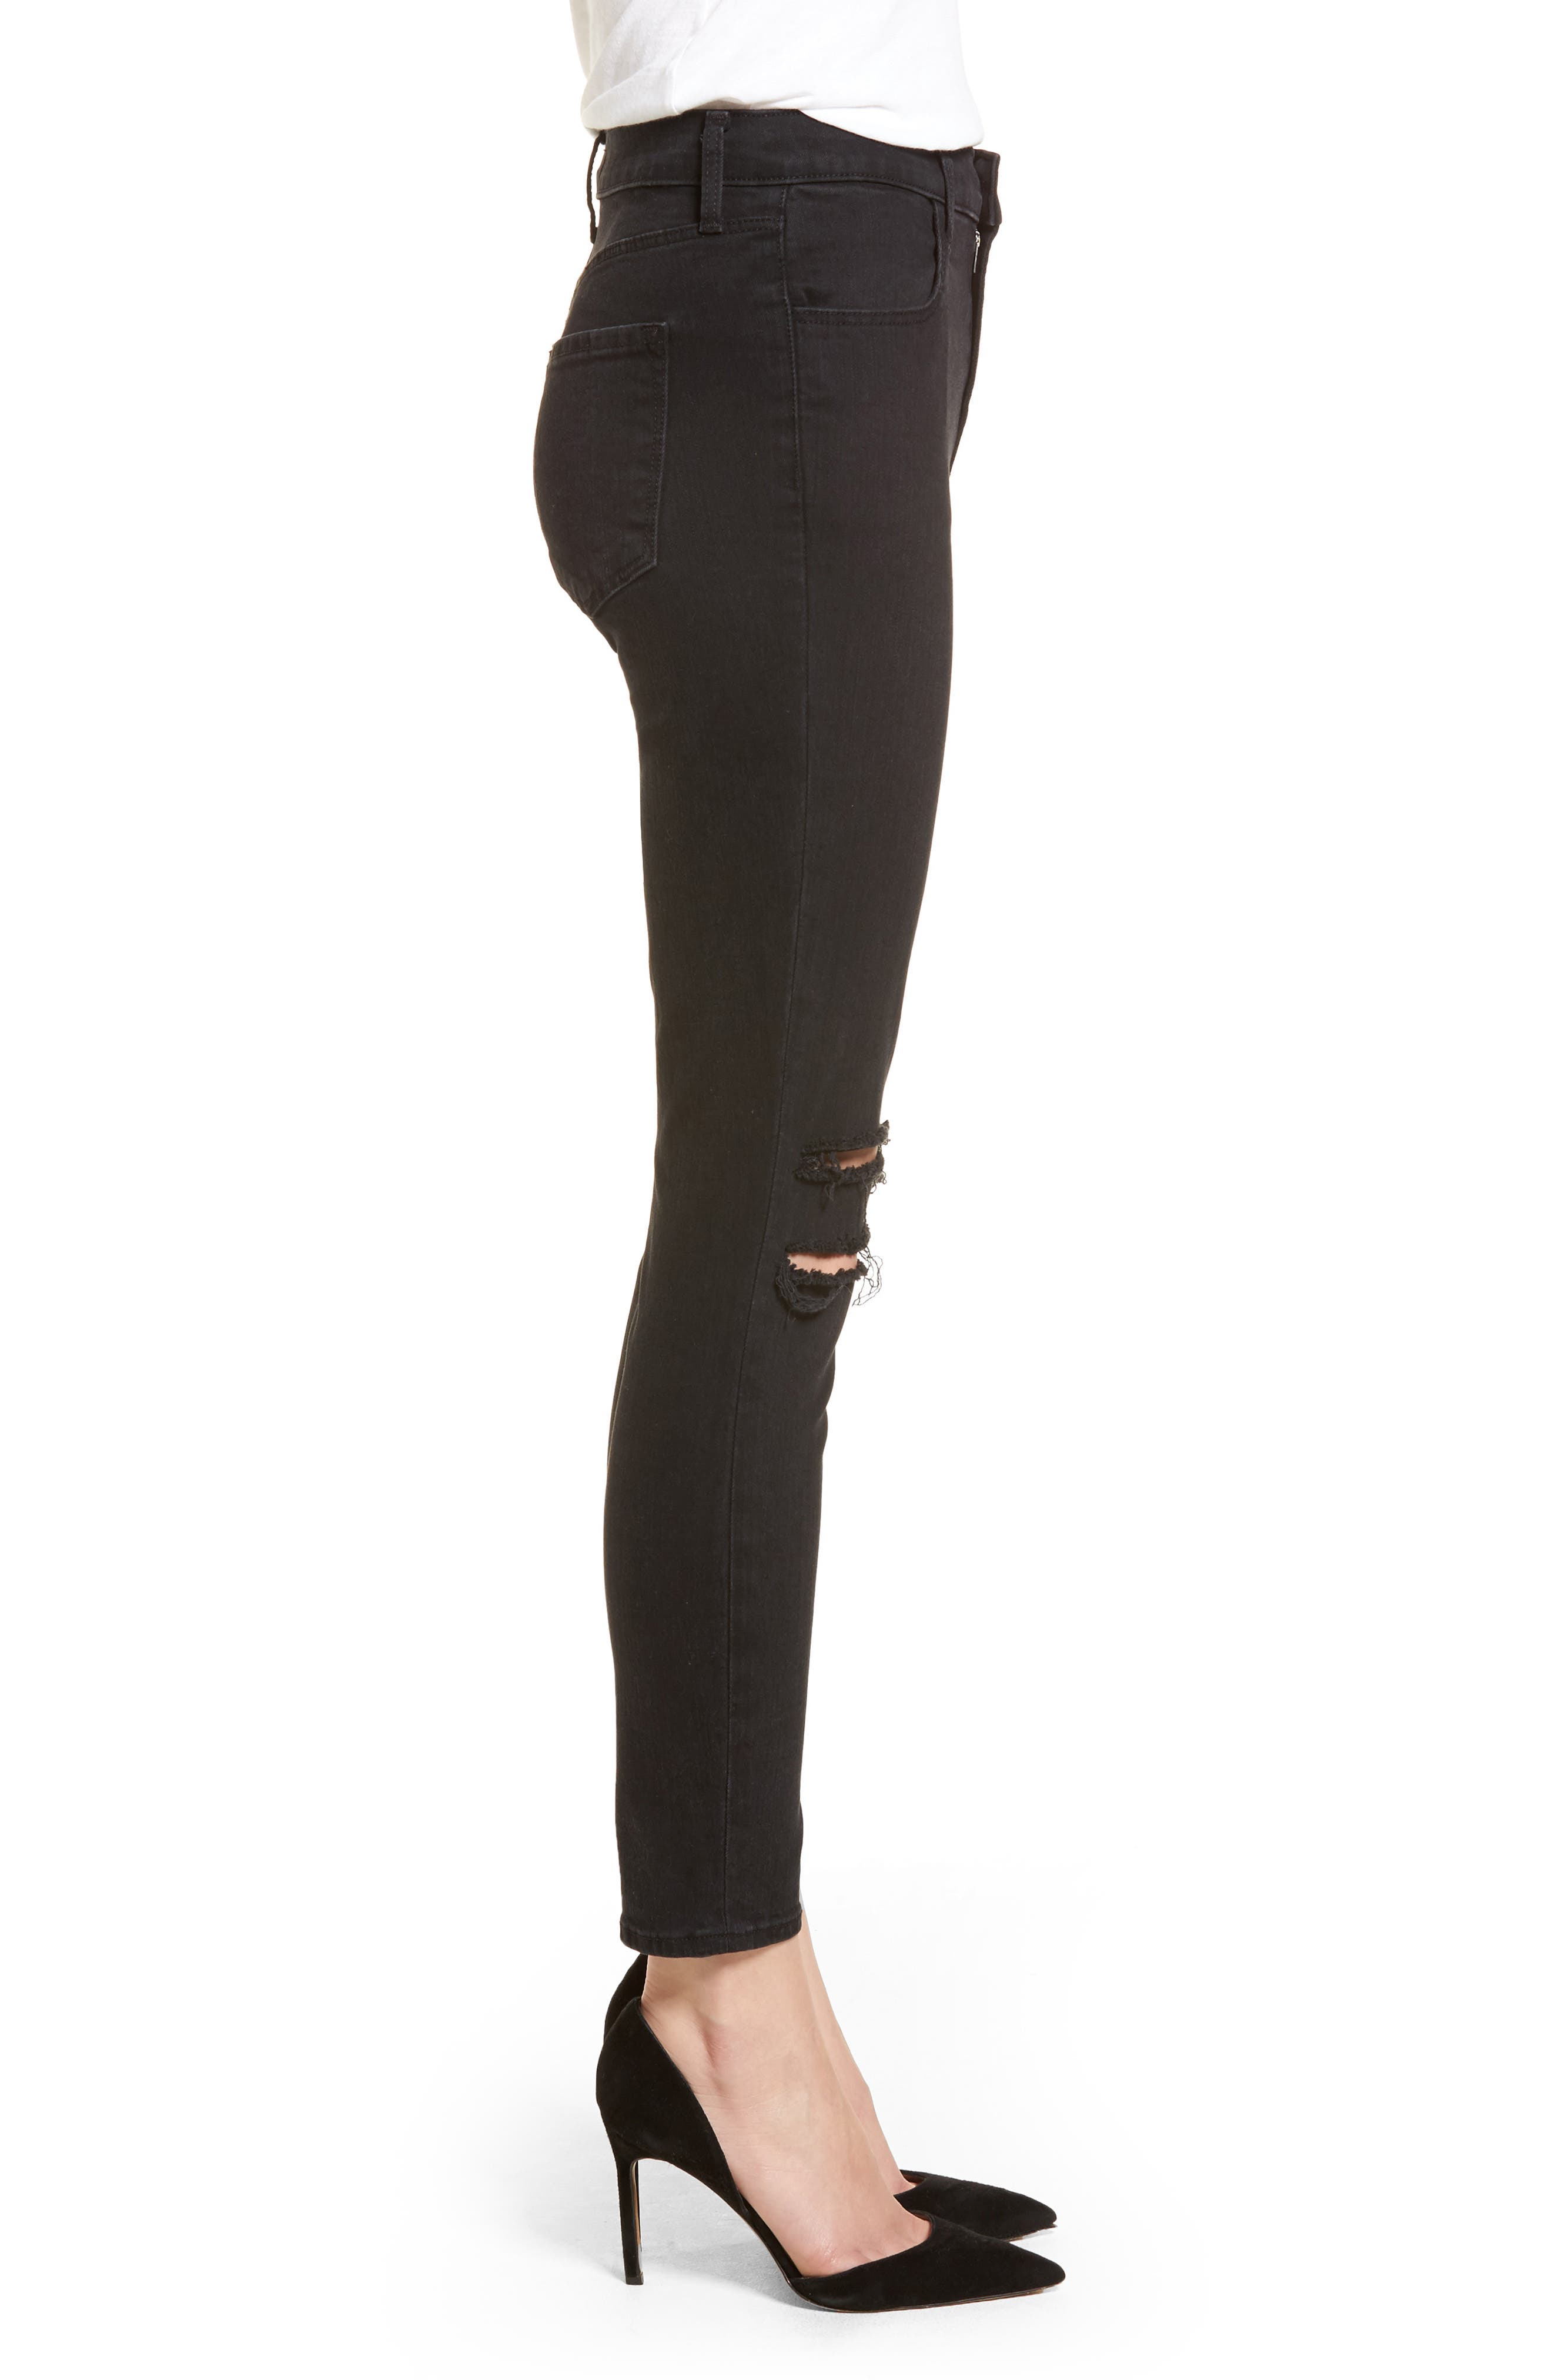 Alternate Image 3  - J Brand Alana High Waist Ankle Skinny Jeans (Black Mercy) (Nordstrom Exclusive)